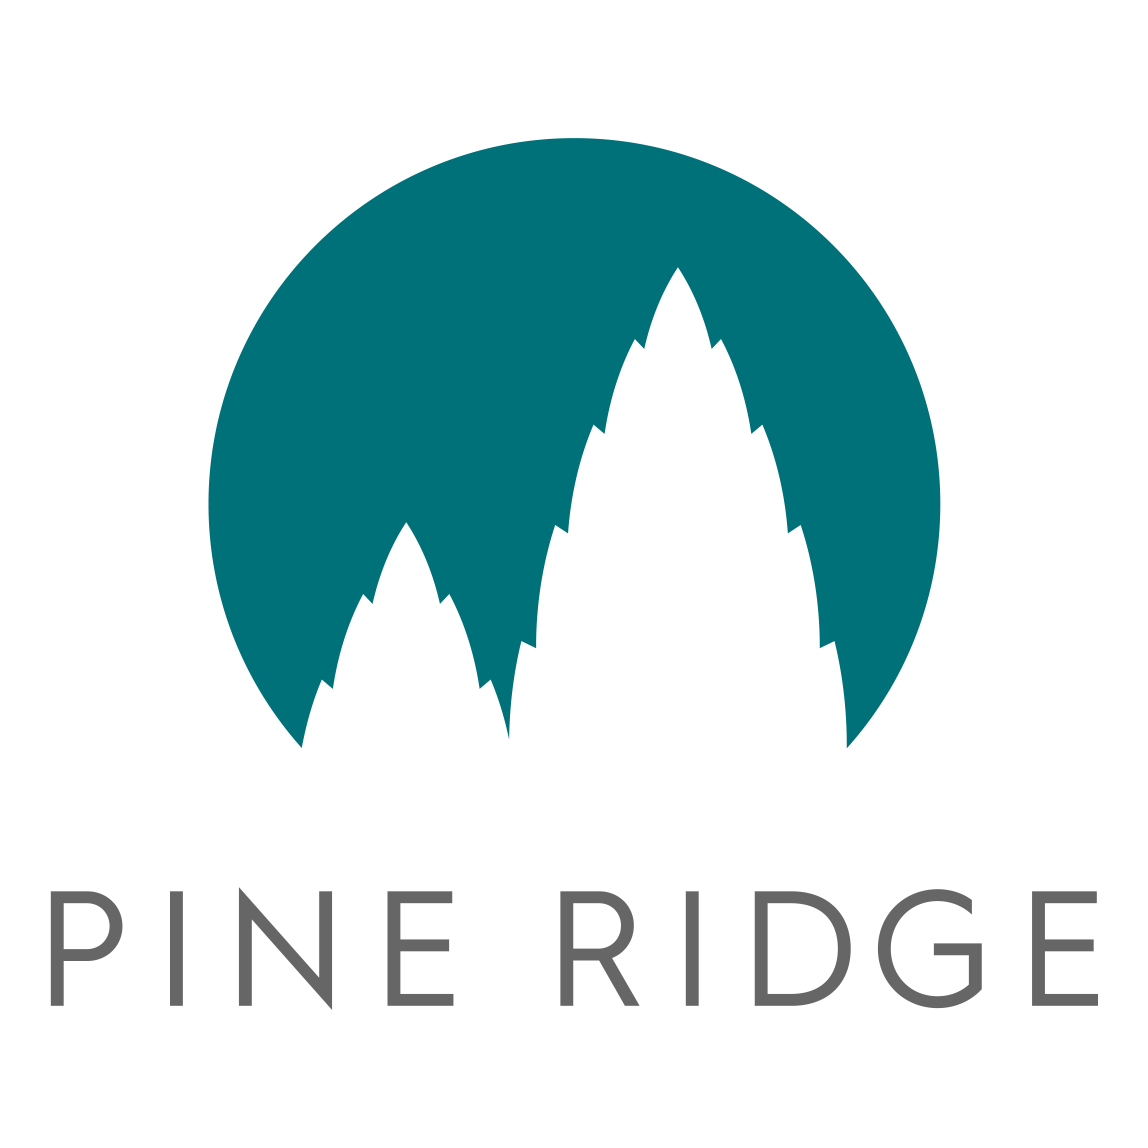 Pine Ridge is under new professional and caring management.